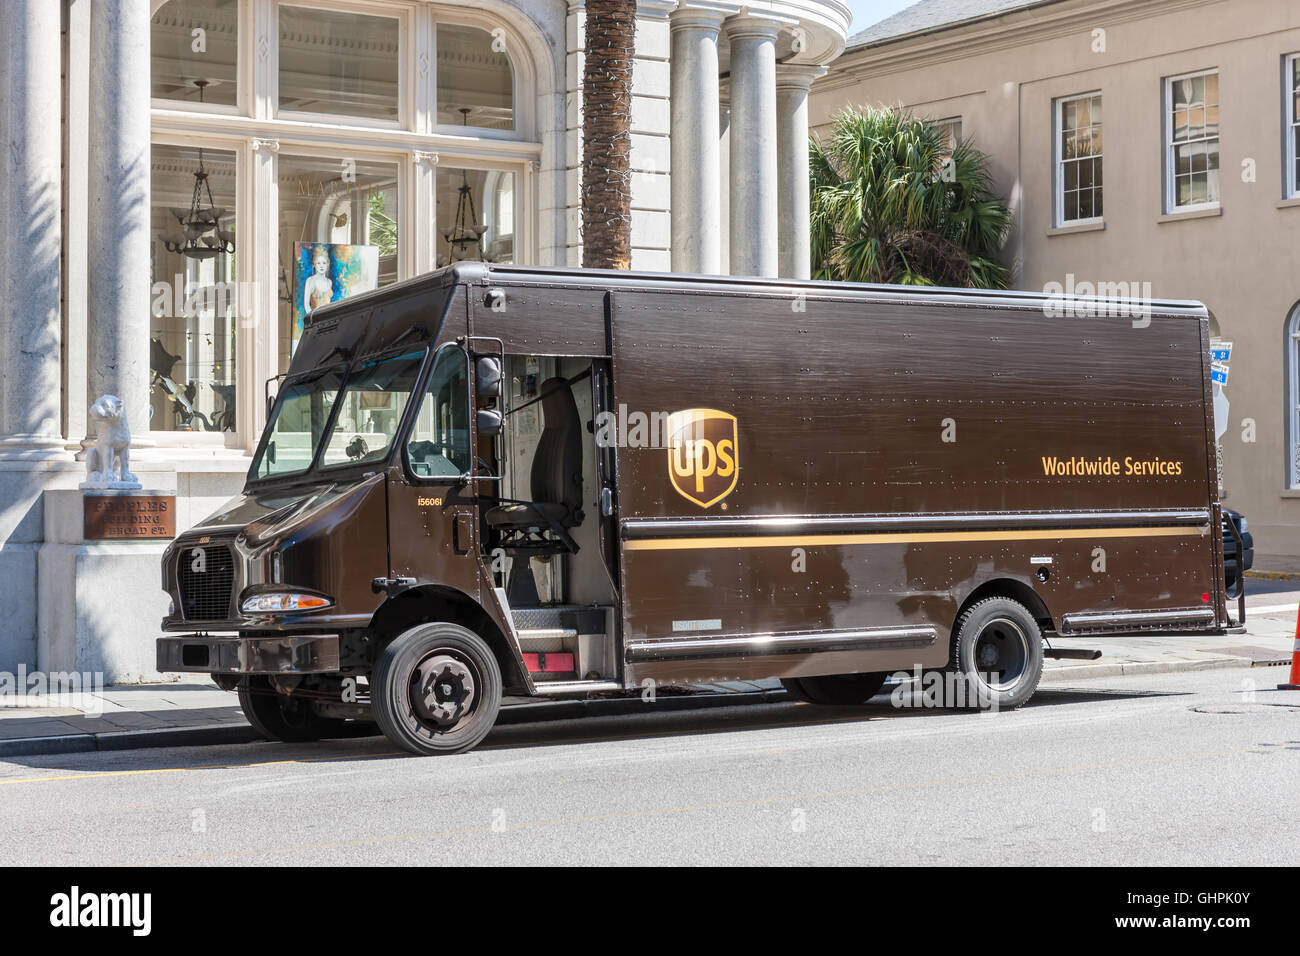 A UPS truck makes a local delivery in Charleston, South Carolina. - Stock Image